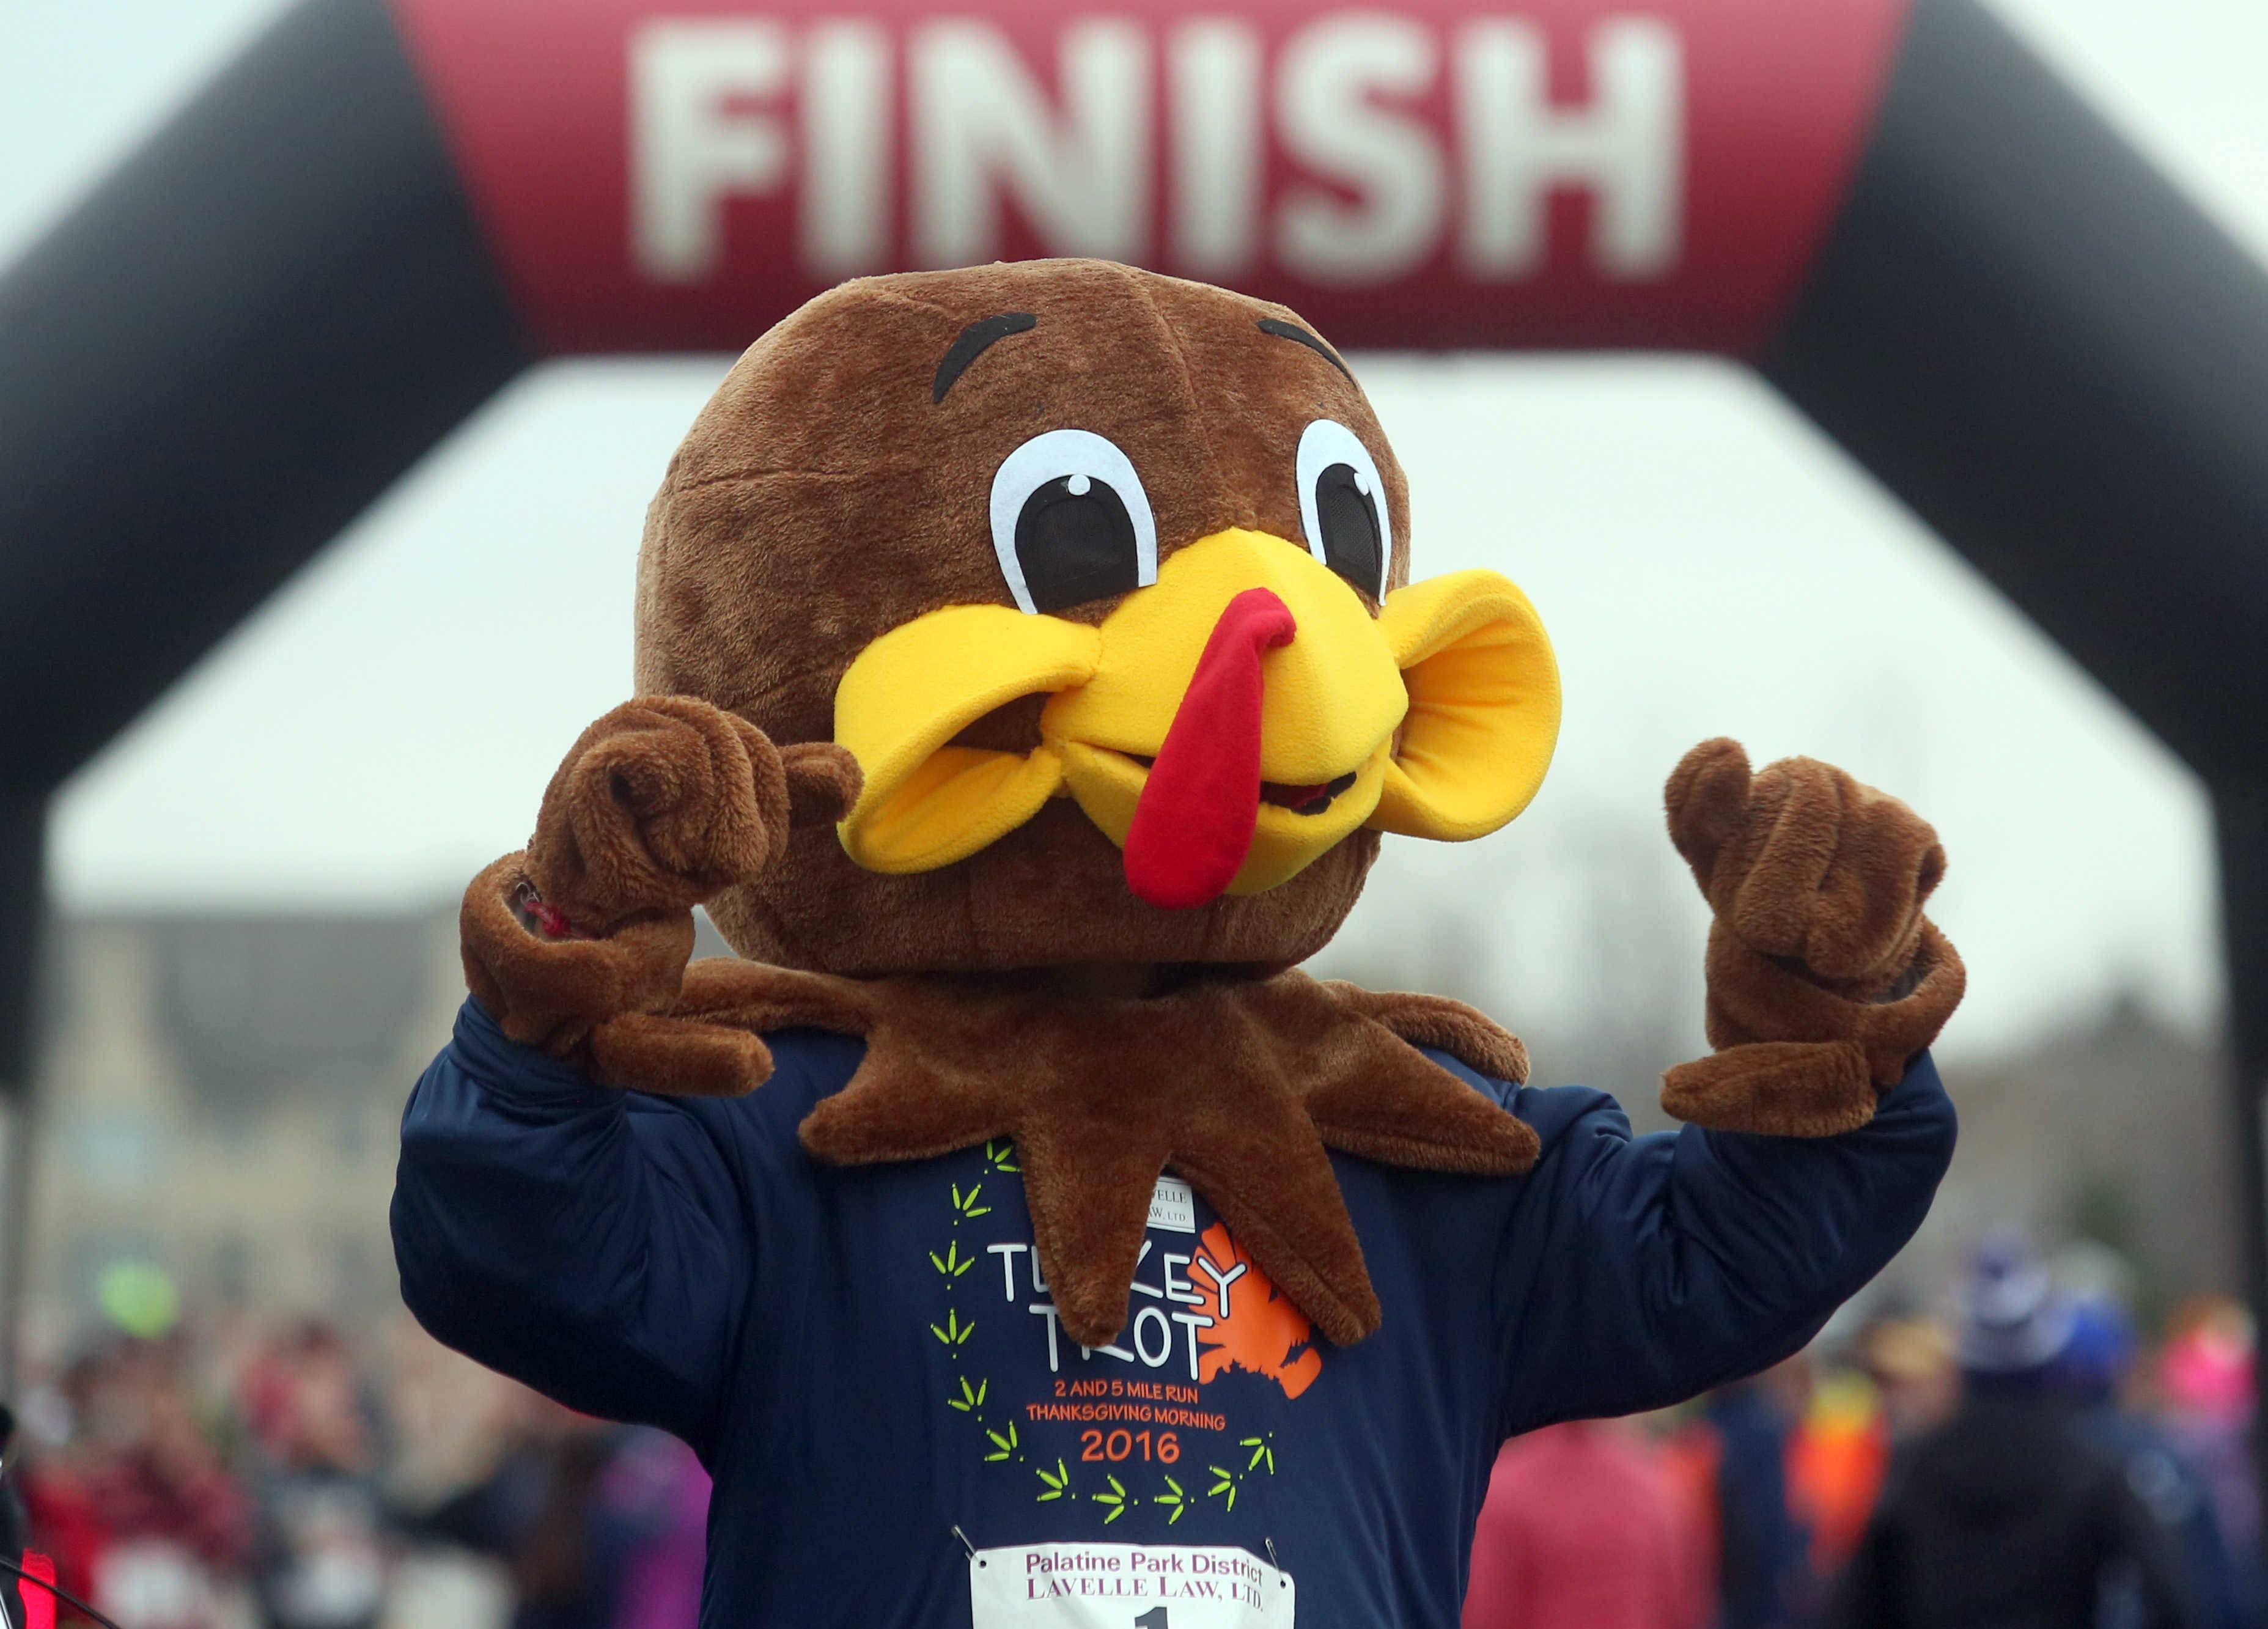 A turkey mascot encourages runners at the finish of the two-mile run during the annual Turkey Trot at Harper College in Palatine.